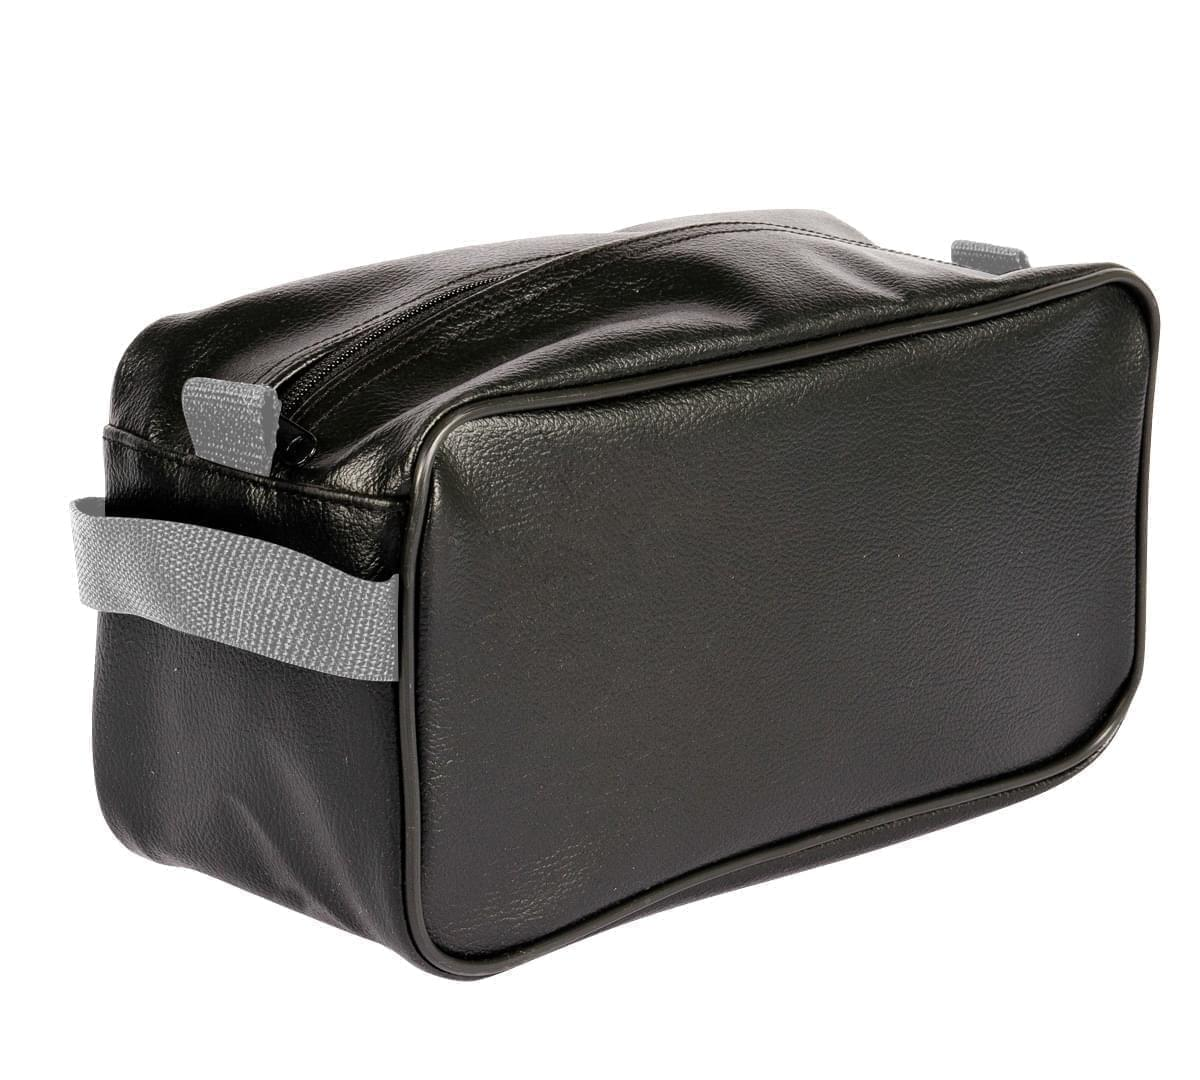 USA Made Cosmetic & Toiletry Cases, Black-Grey, 3000996-AOU